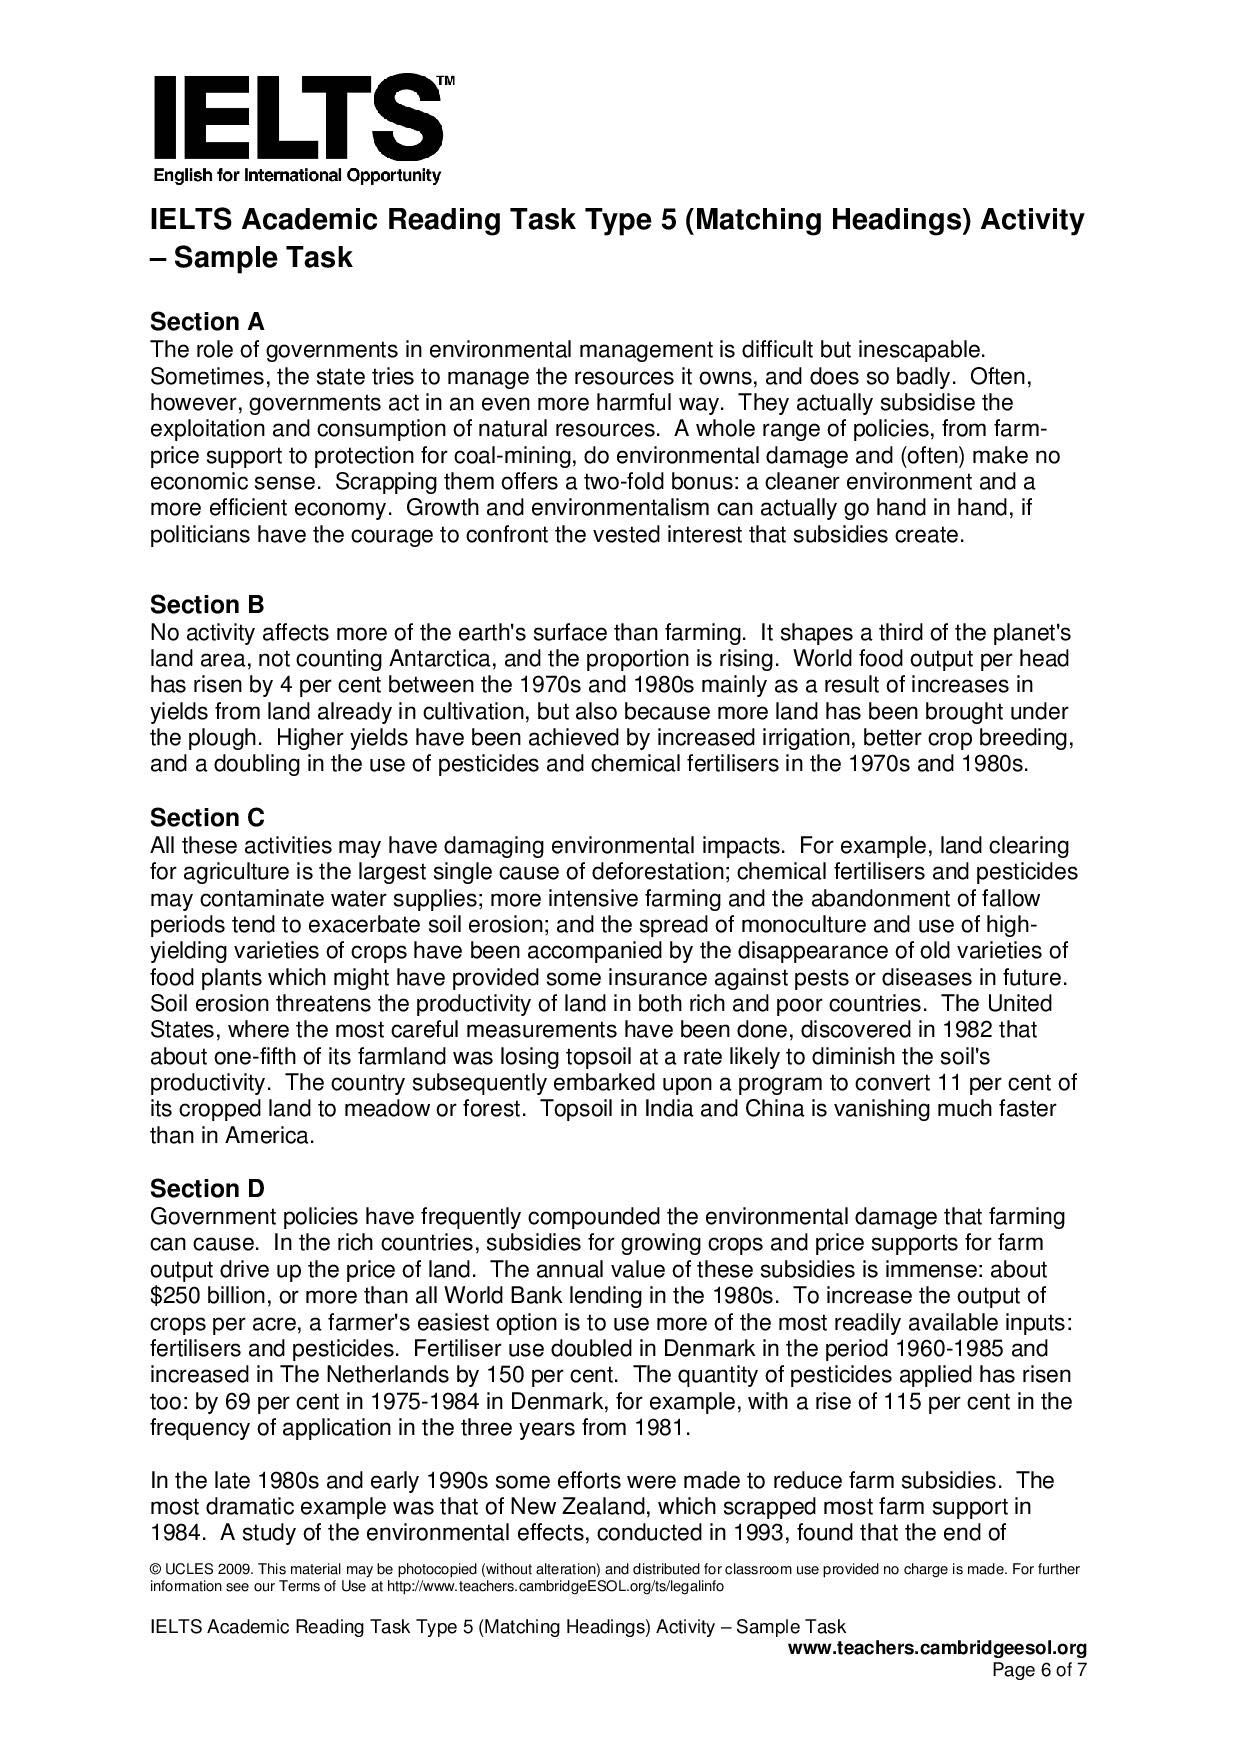 ielts academic reading task type 5  matching headings